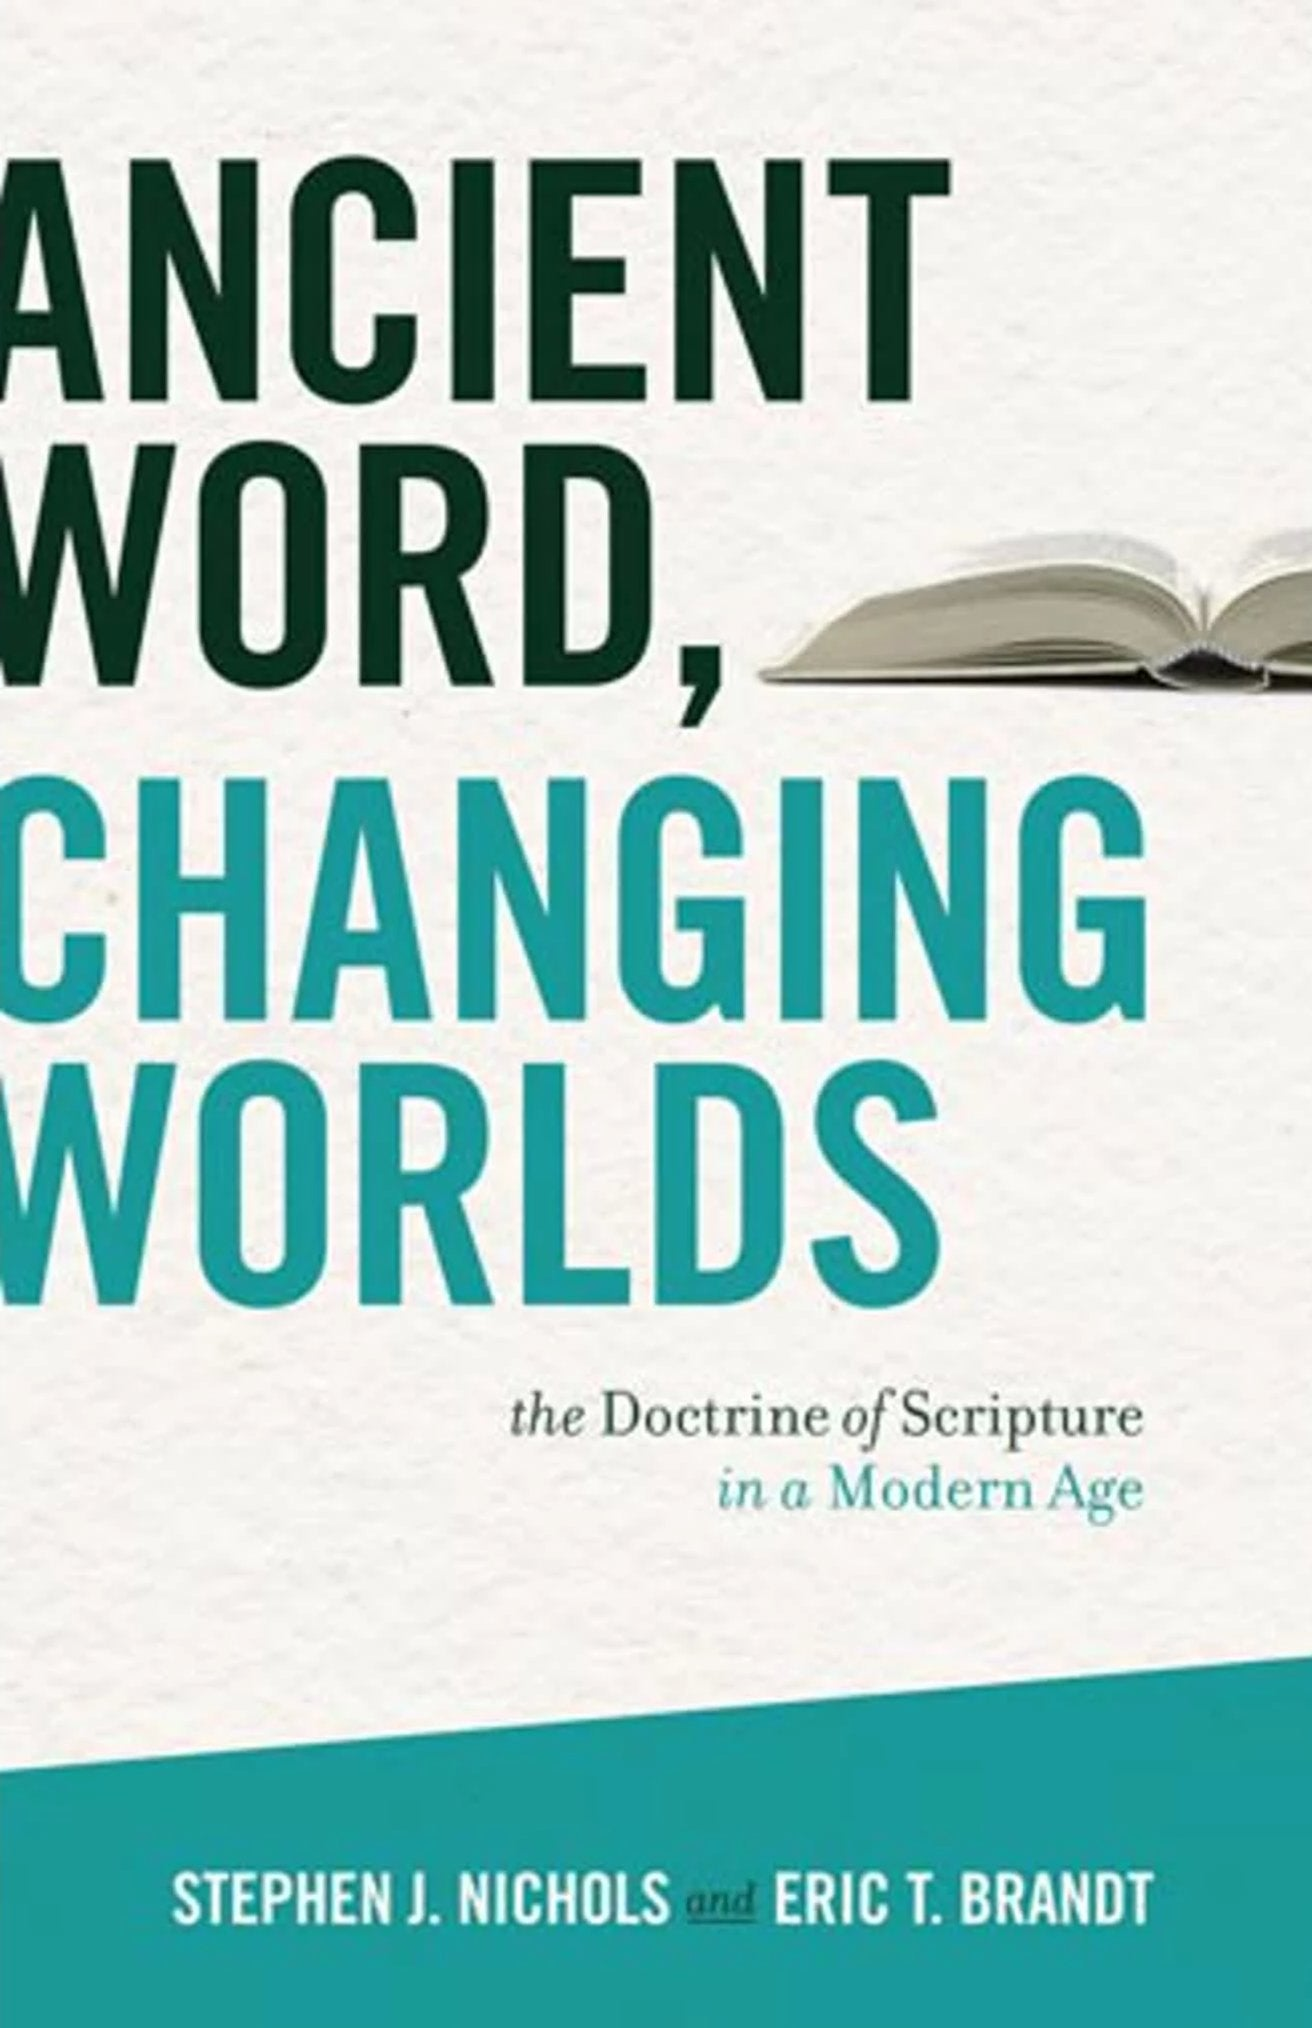 Ancient Word, Changing Worlds: The Doctrine of Scripture in a Modern Age